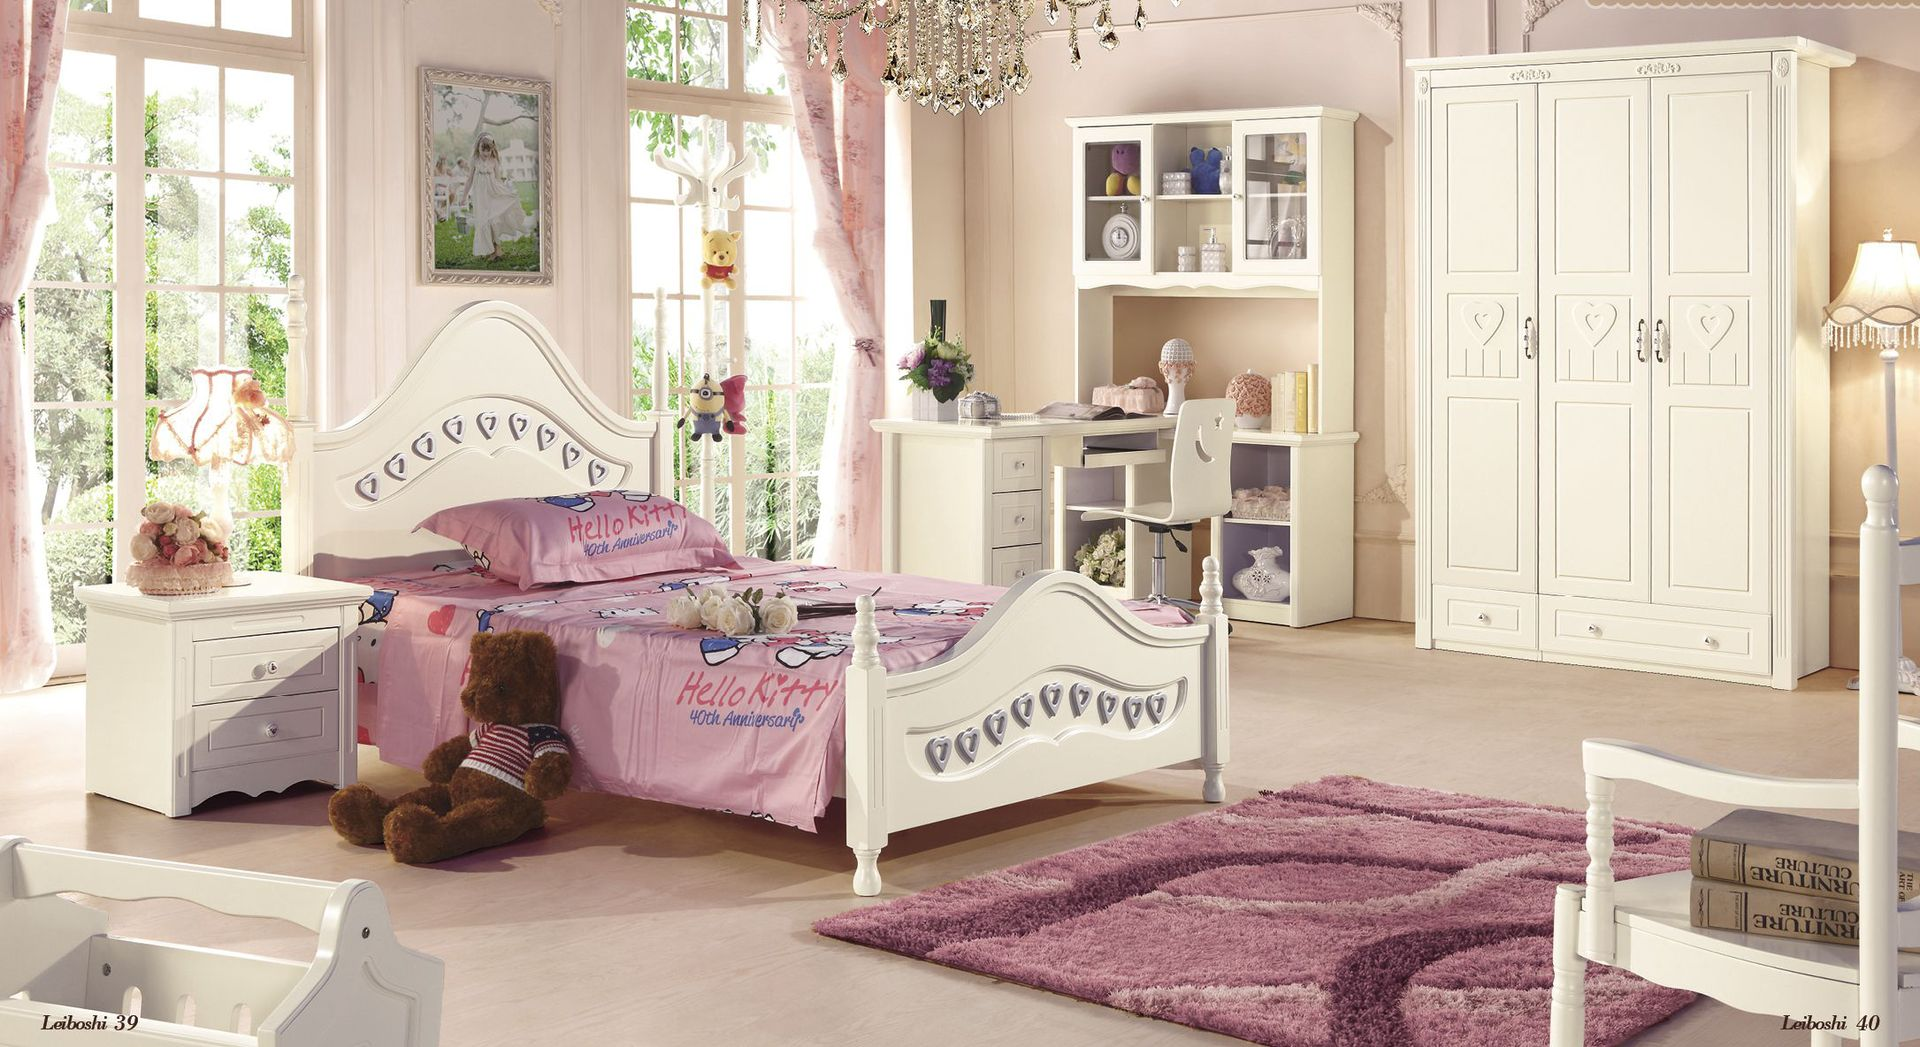 Princess Solid Wood Bedroom Furniture Childrens Bed Kids Beds - Childrens bedroom furniture cheap prices